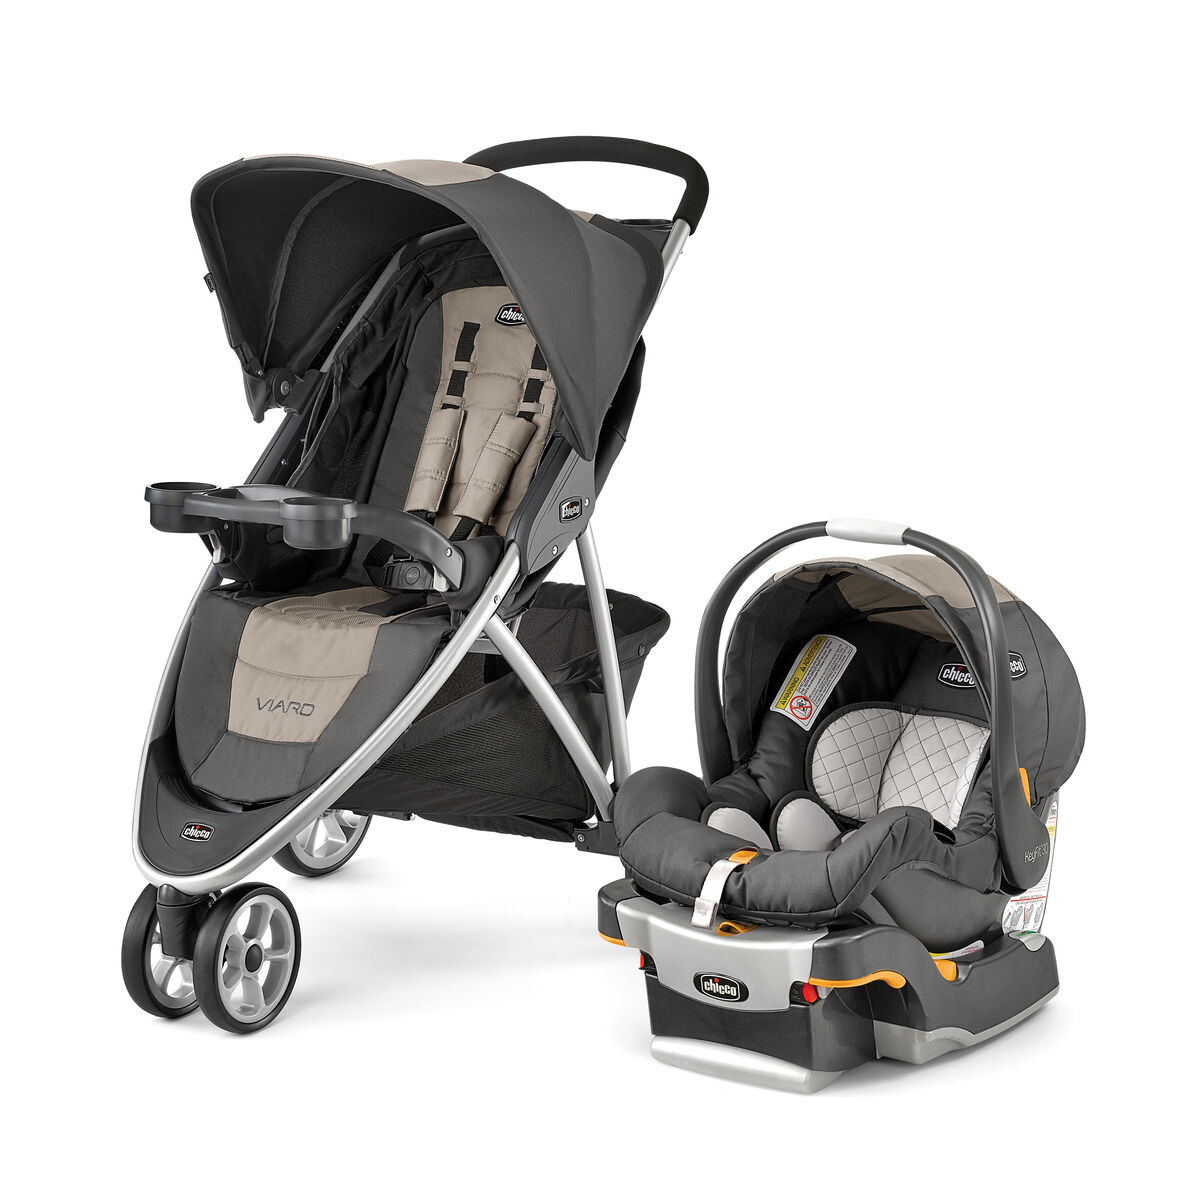 Best Stroller And Car Seat